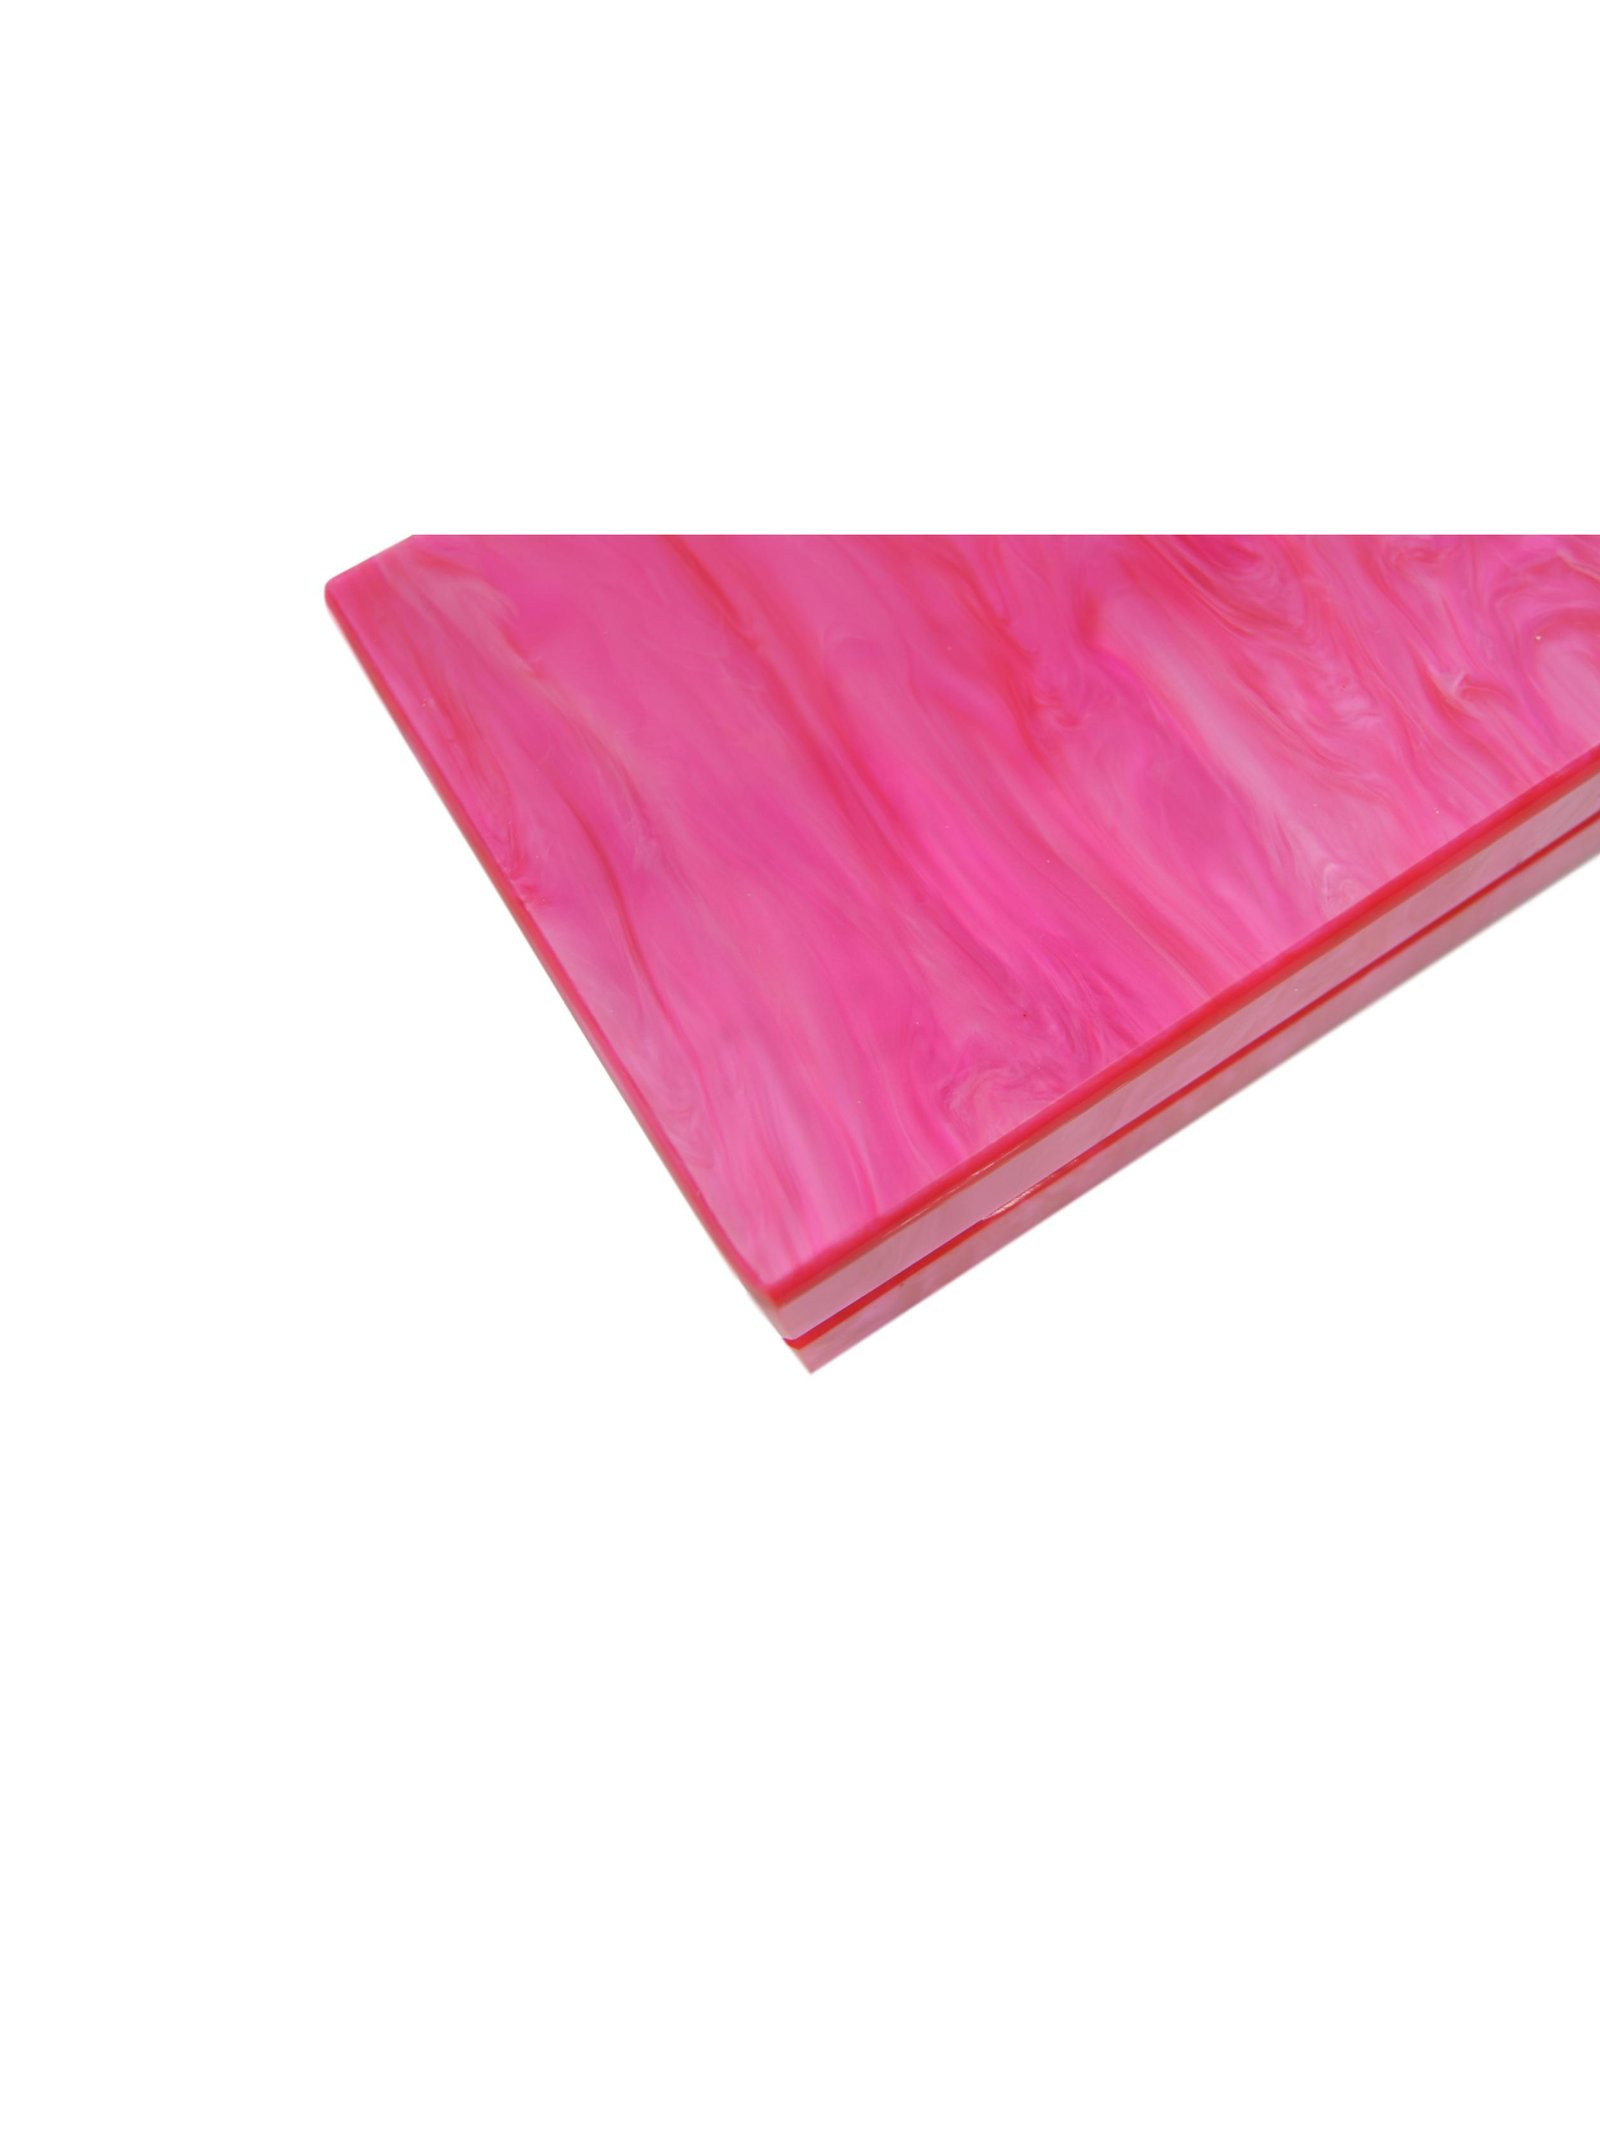 Milanblocks Electric Pink Acrylic Box Clutch